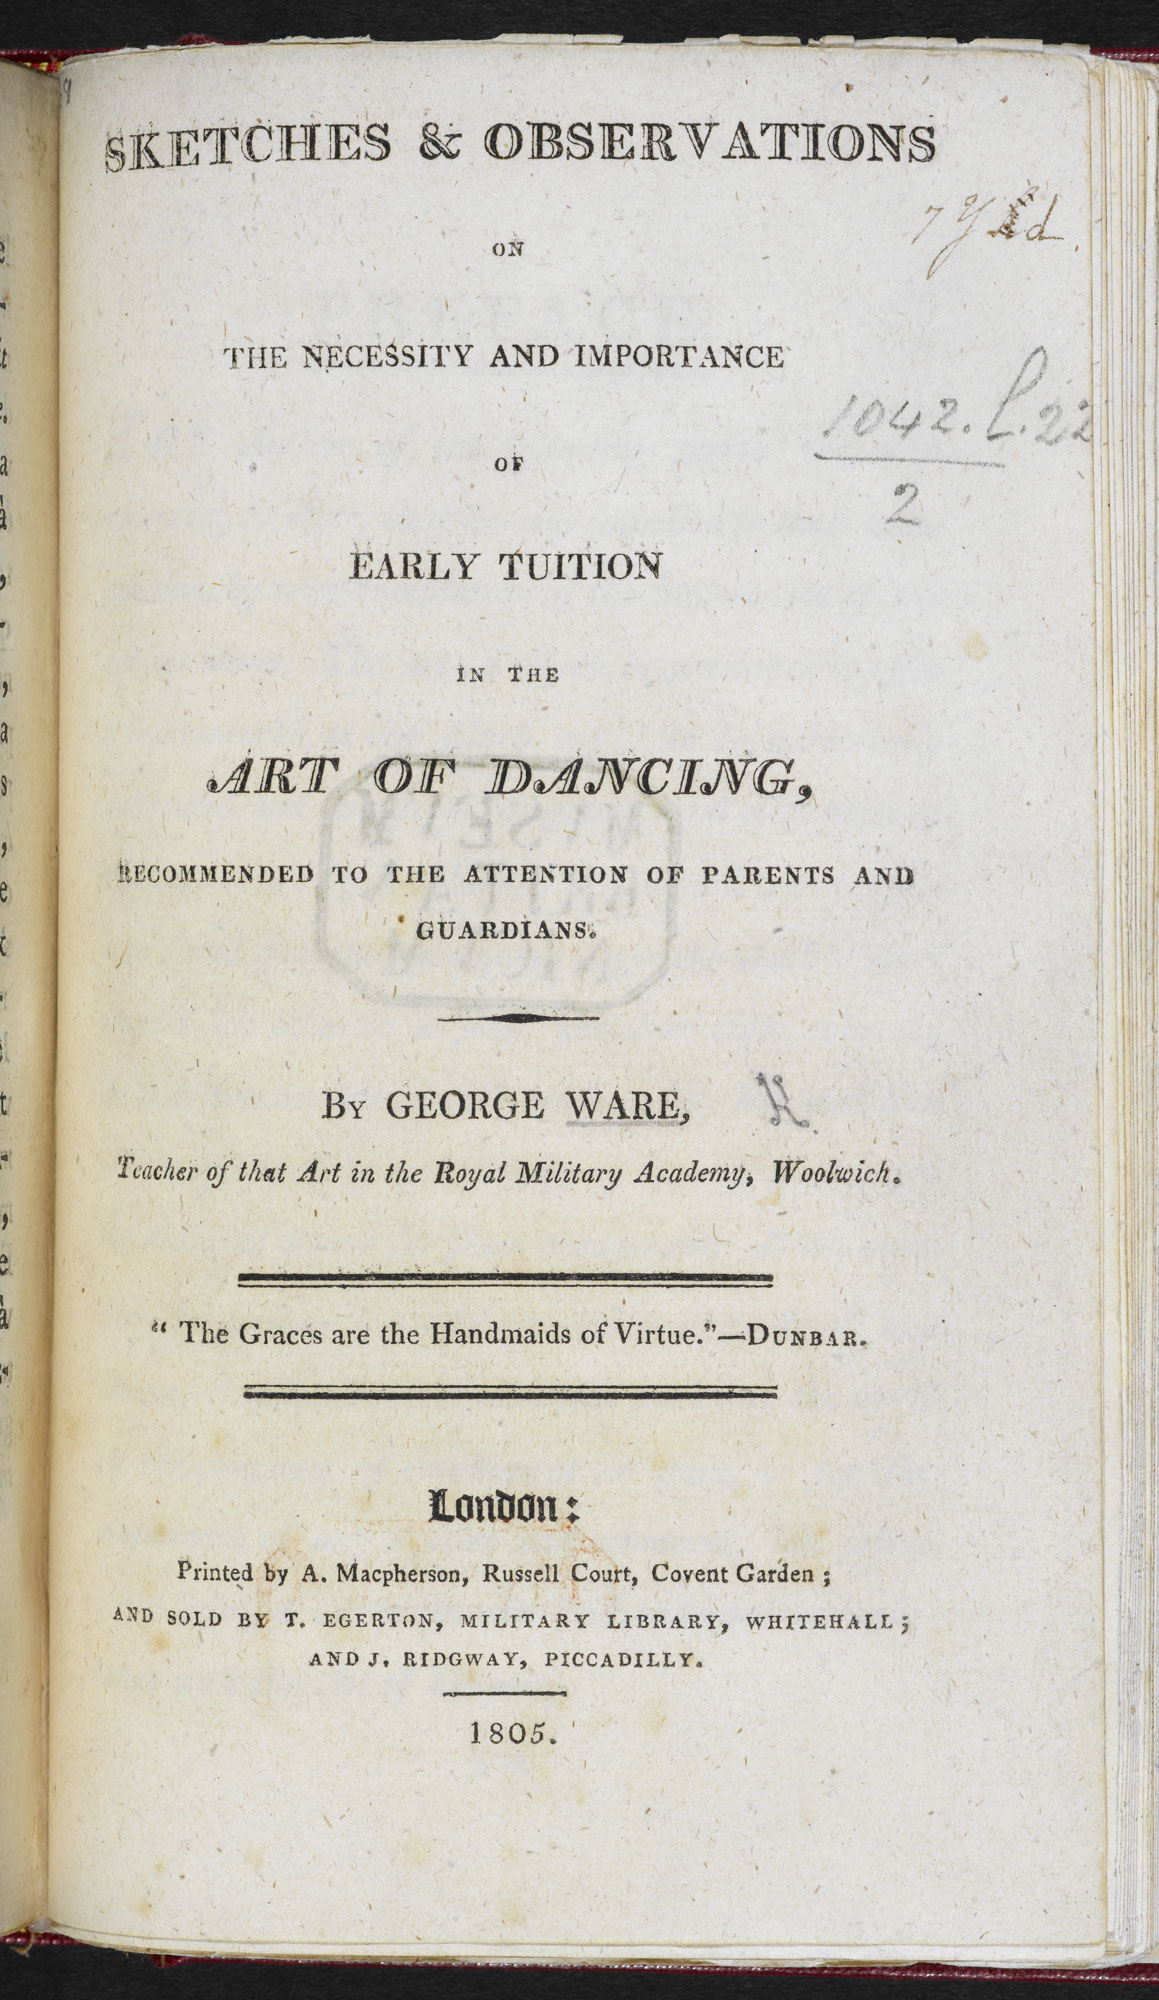 Early Tuition in the Art of Dancing [page: title page]